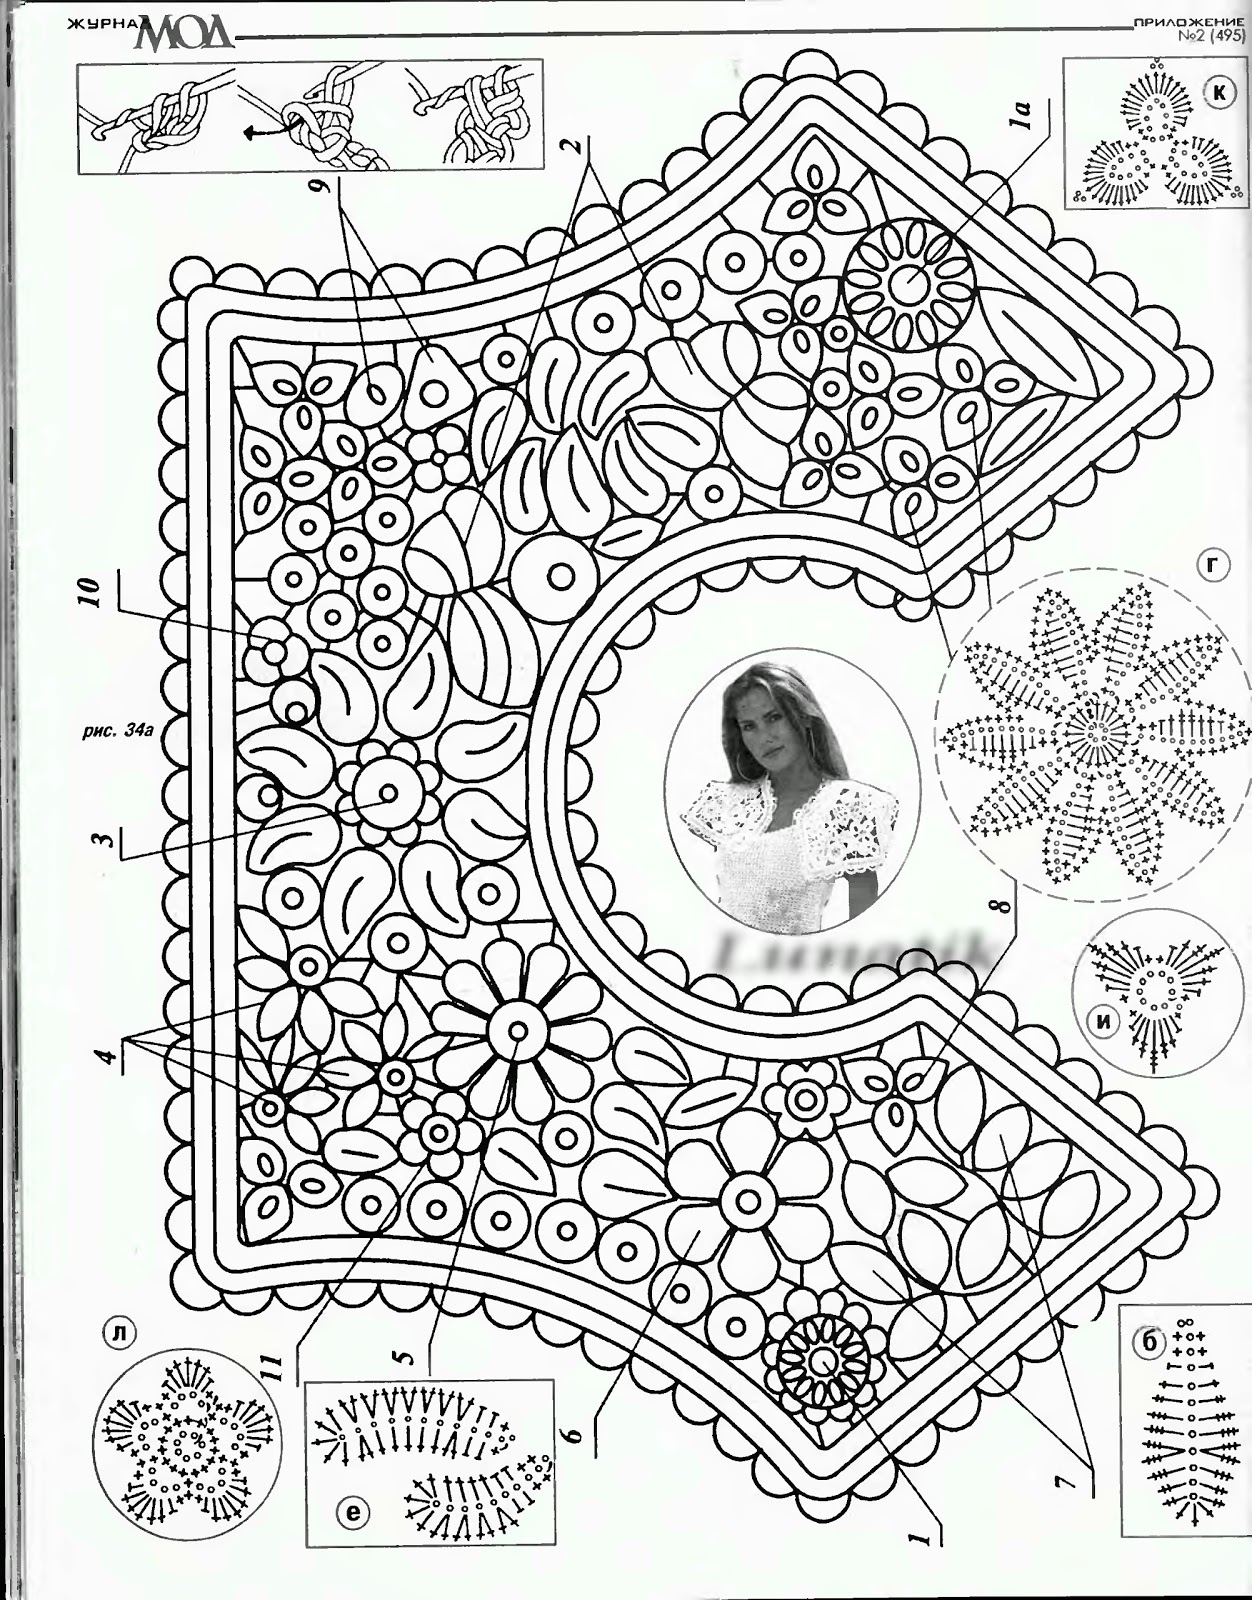 guandesign guna andersone Irish crochet pattern